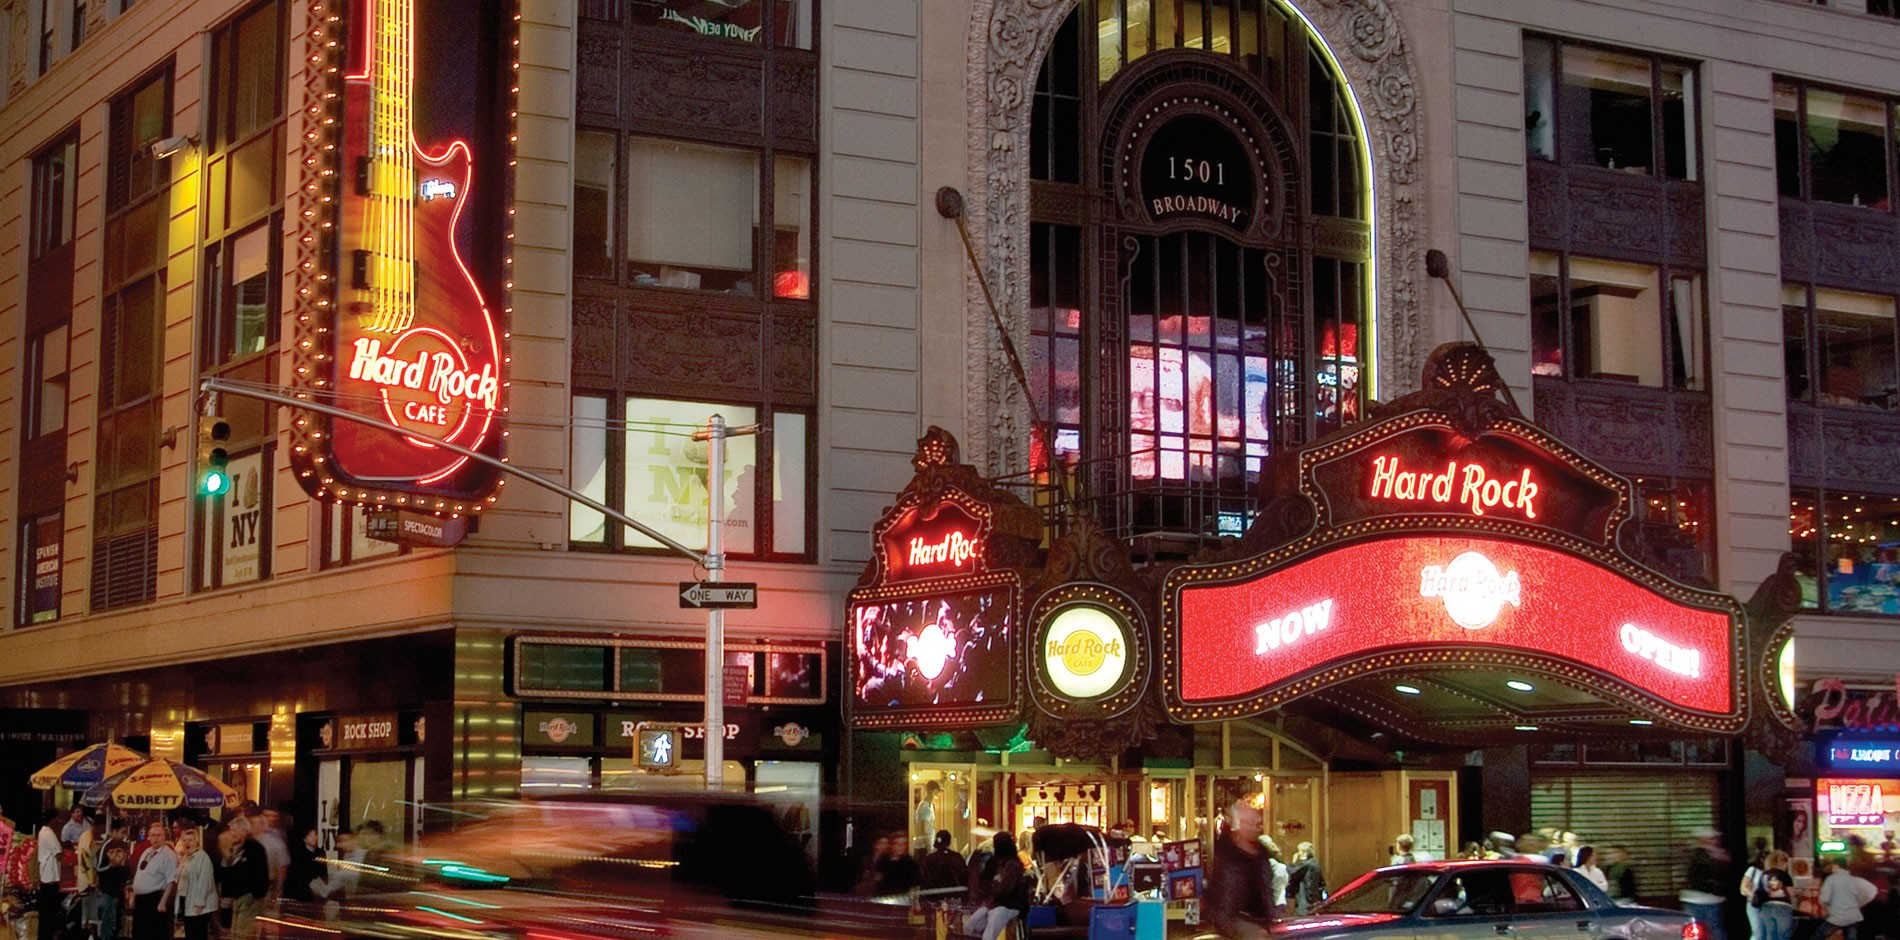 Hard Rock Cafe Construction New York City Fit Out